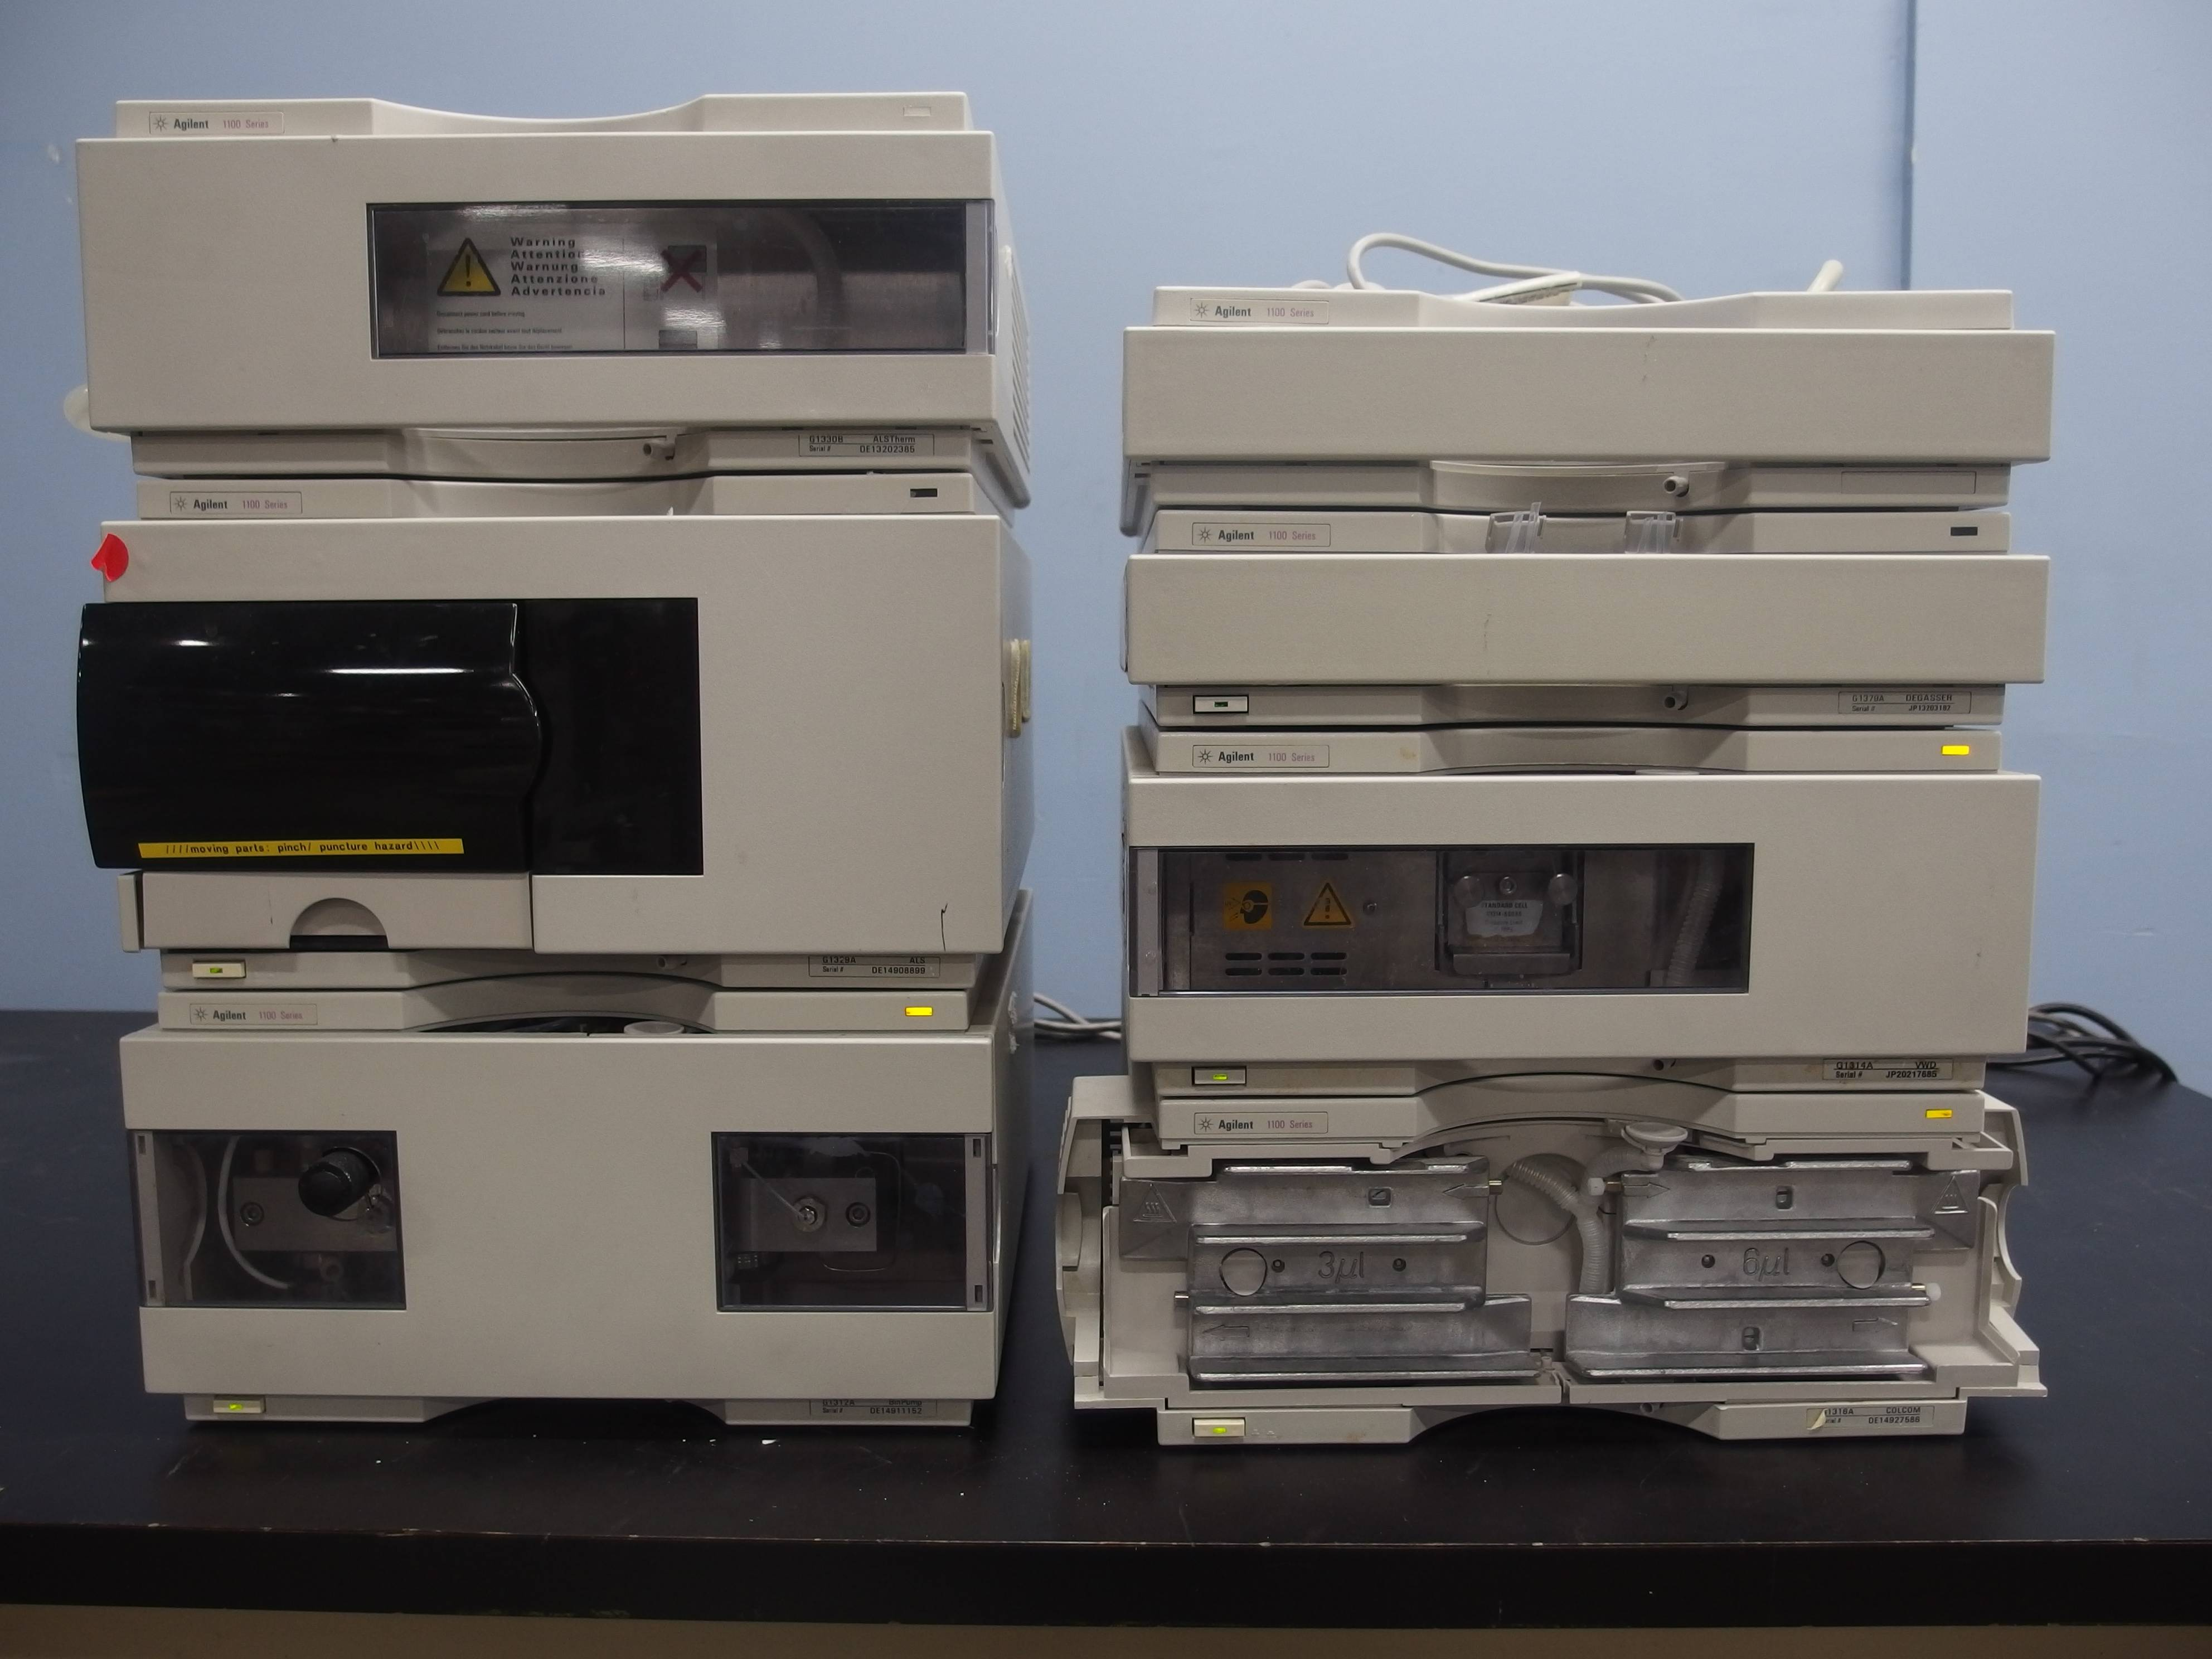 Agilent 1100 Series HPLC System With VWD Detector